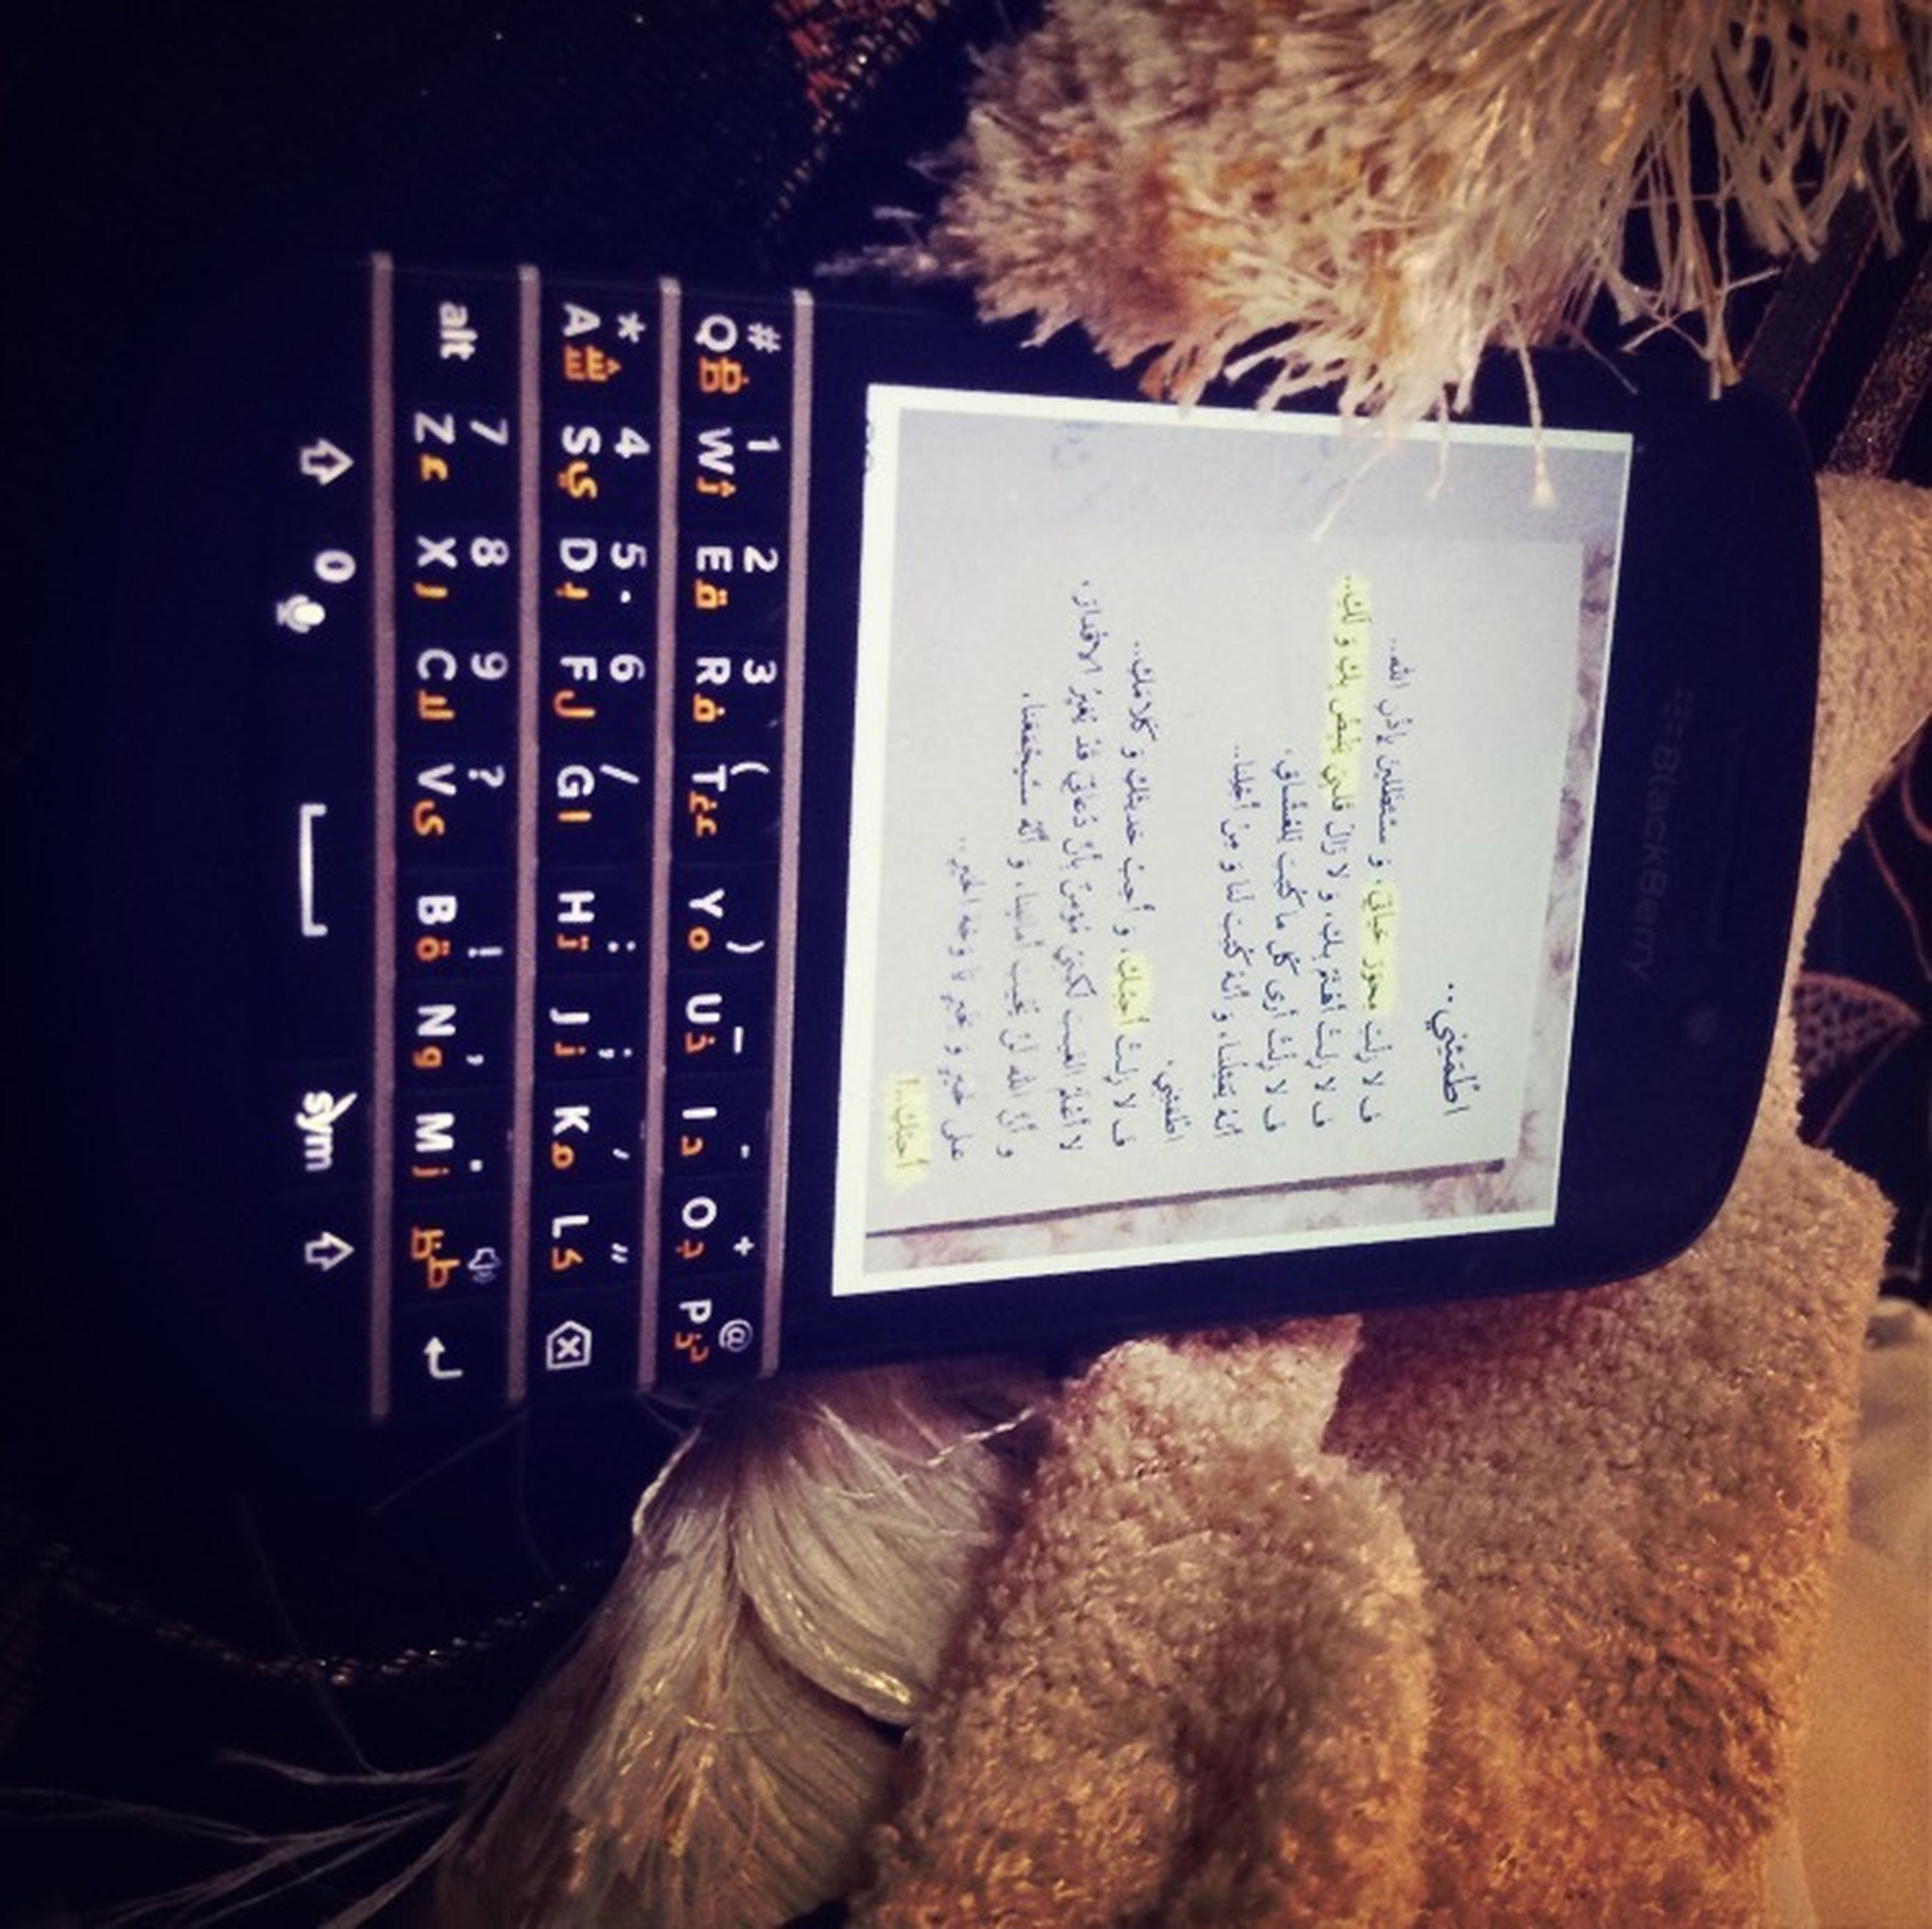 indoors, communication, text, western script, book, close-up, technology, wireless technology, paper, non-western script, table, laptop, high angle view, home interior, number, part of, connection